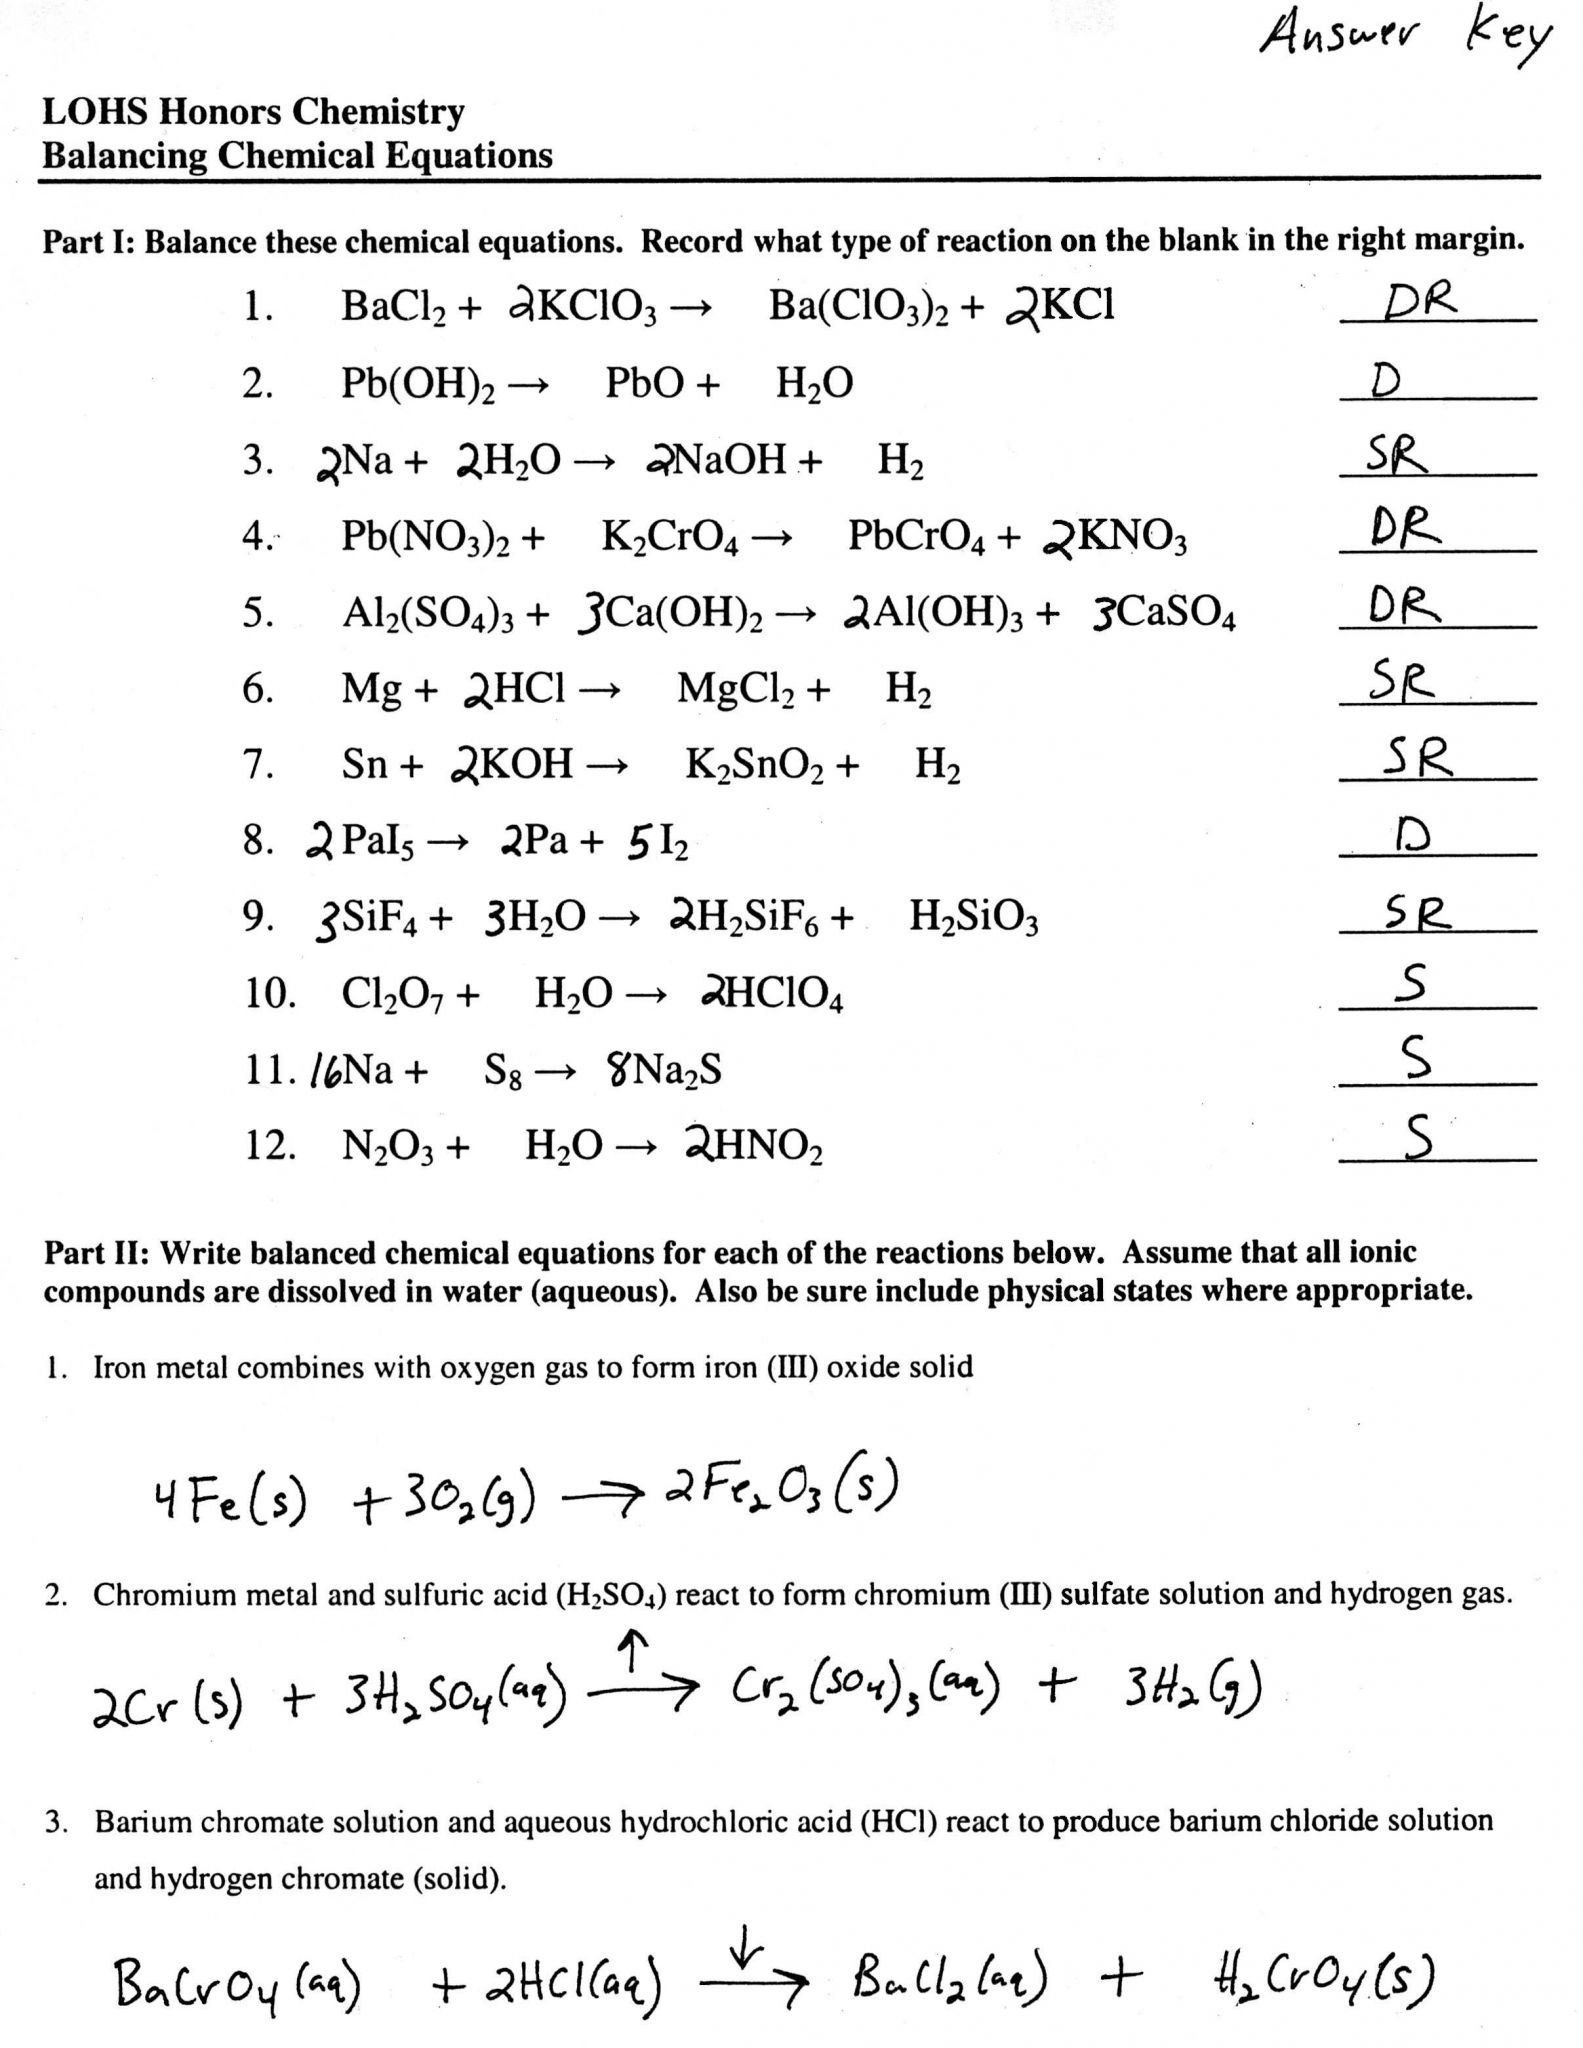 Nuclear Decay Worksheet Answers Key Chemistry Radioactive ...